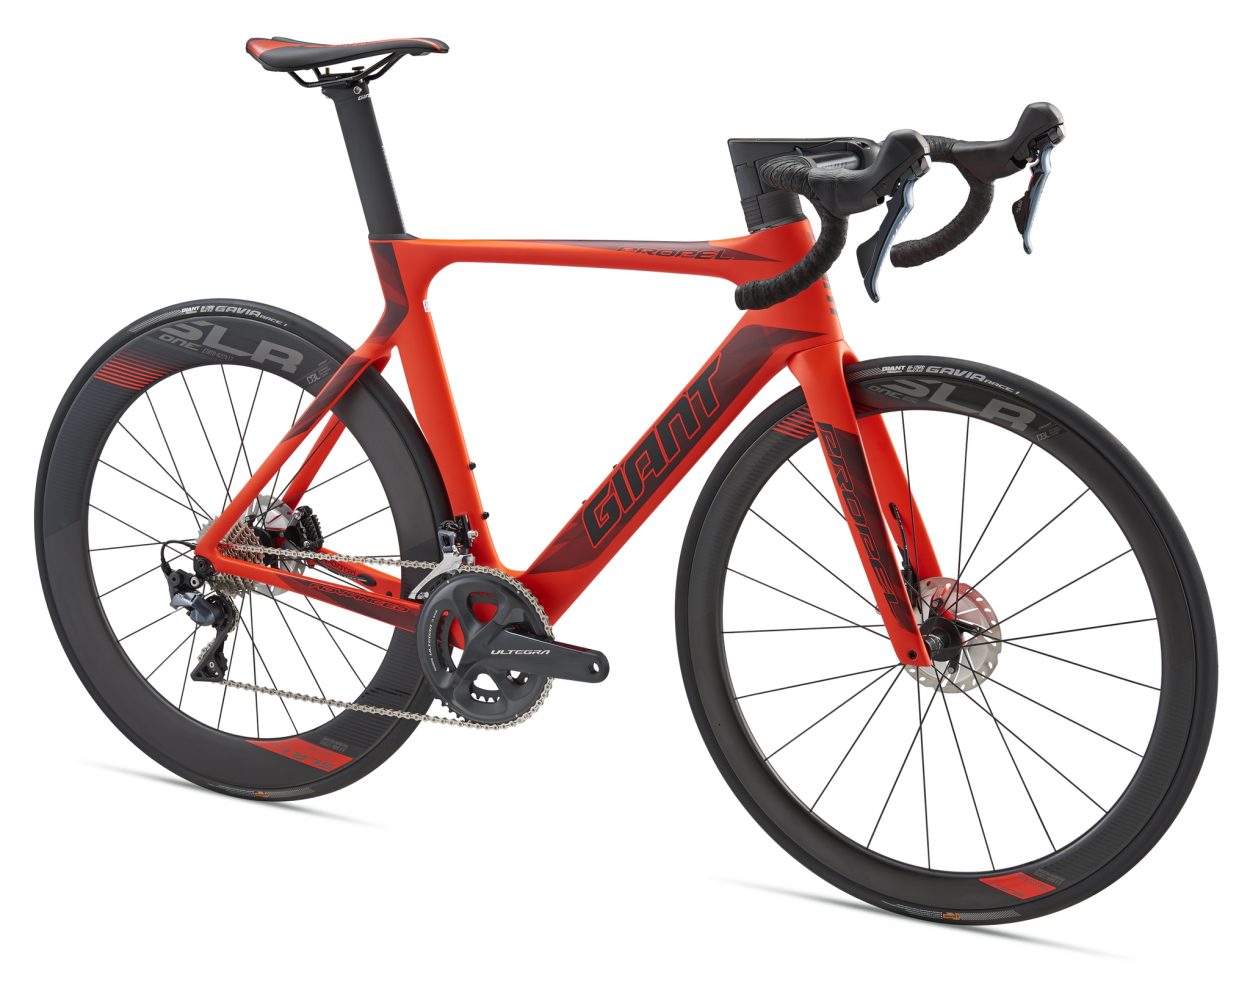 ea5855c0062 The 2018 Propel Advanced Disc series frameset is handcrafted with Advanced-grade  composite, including a hybrid composite fork, developed with AeroSystem ...